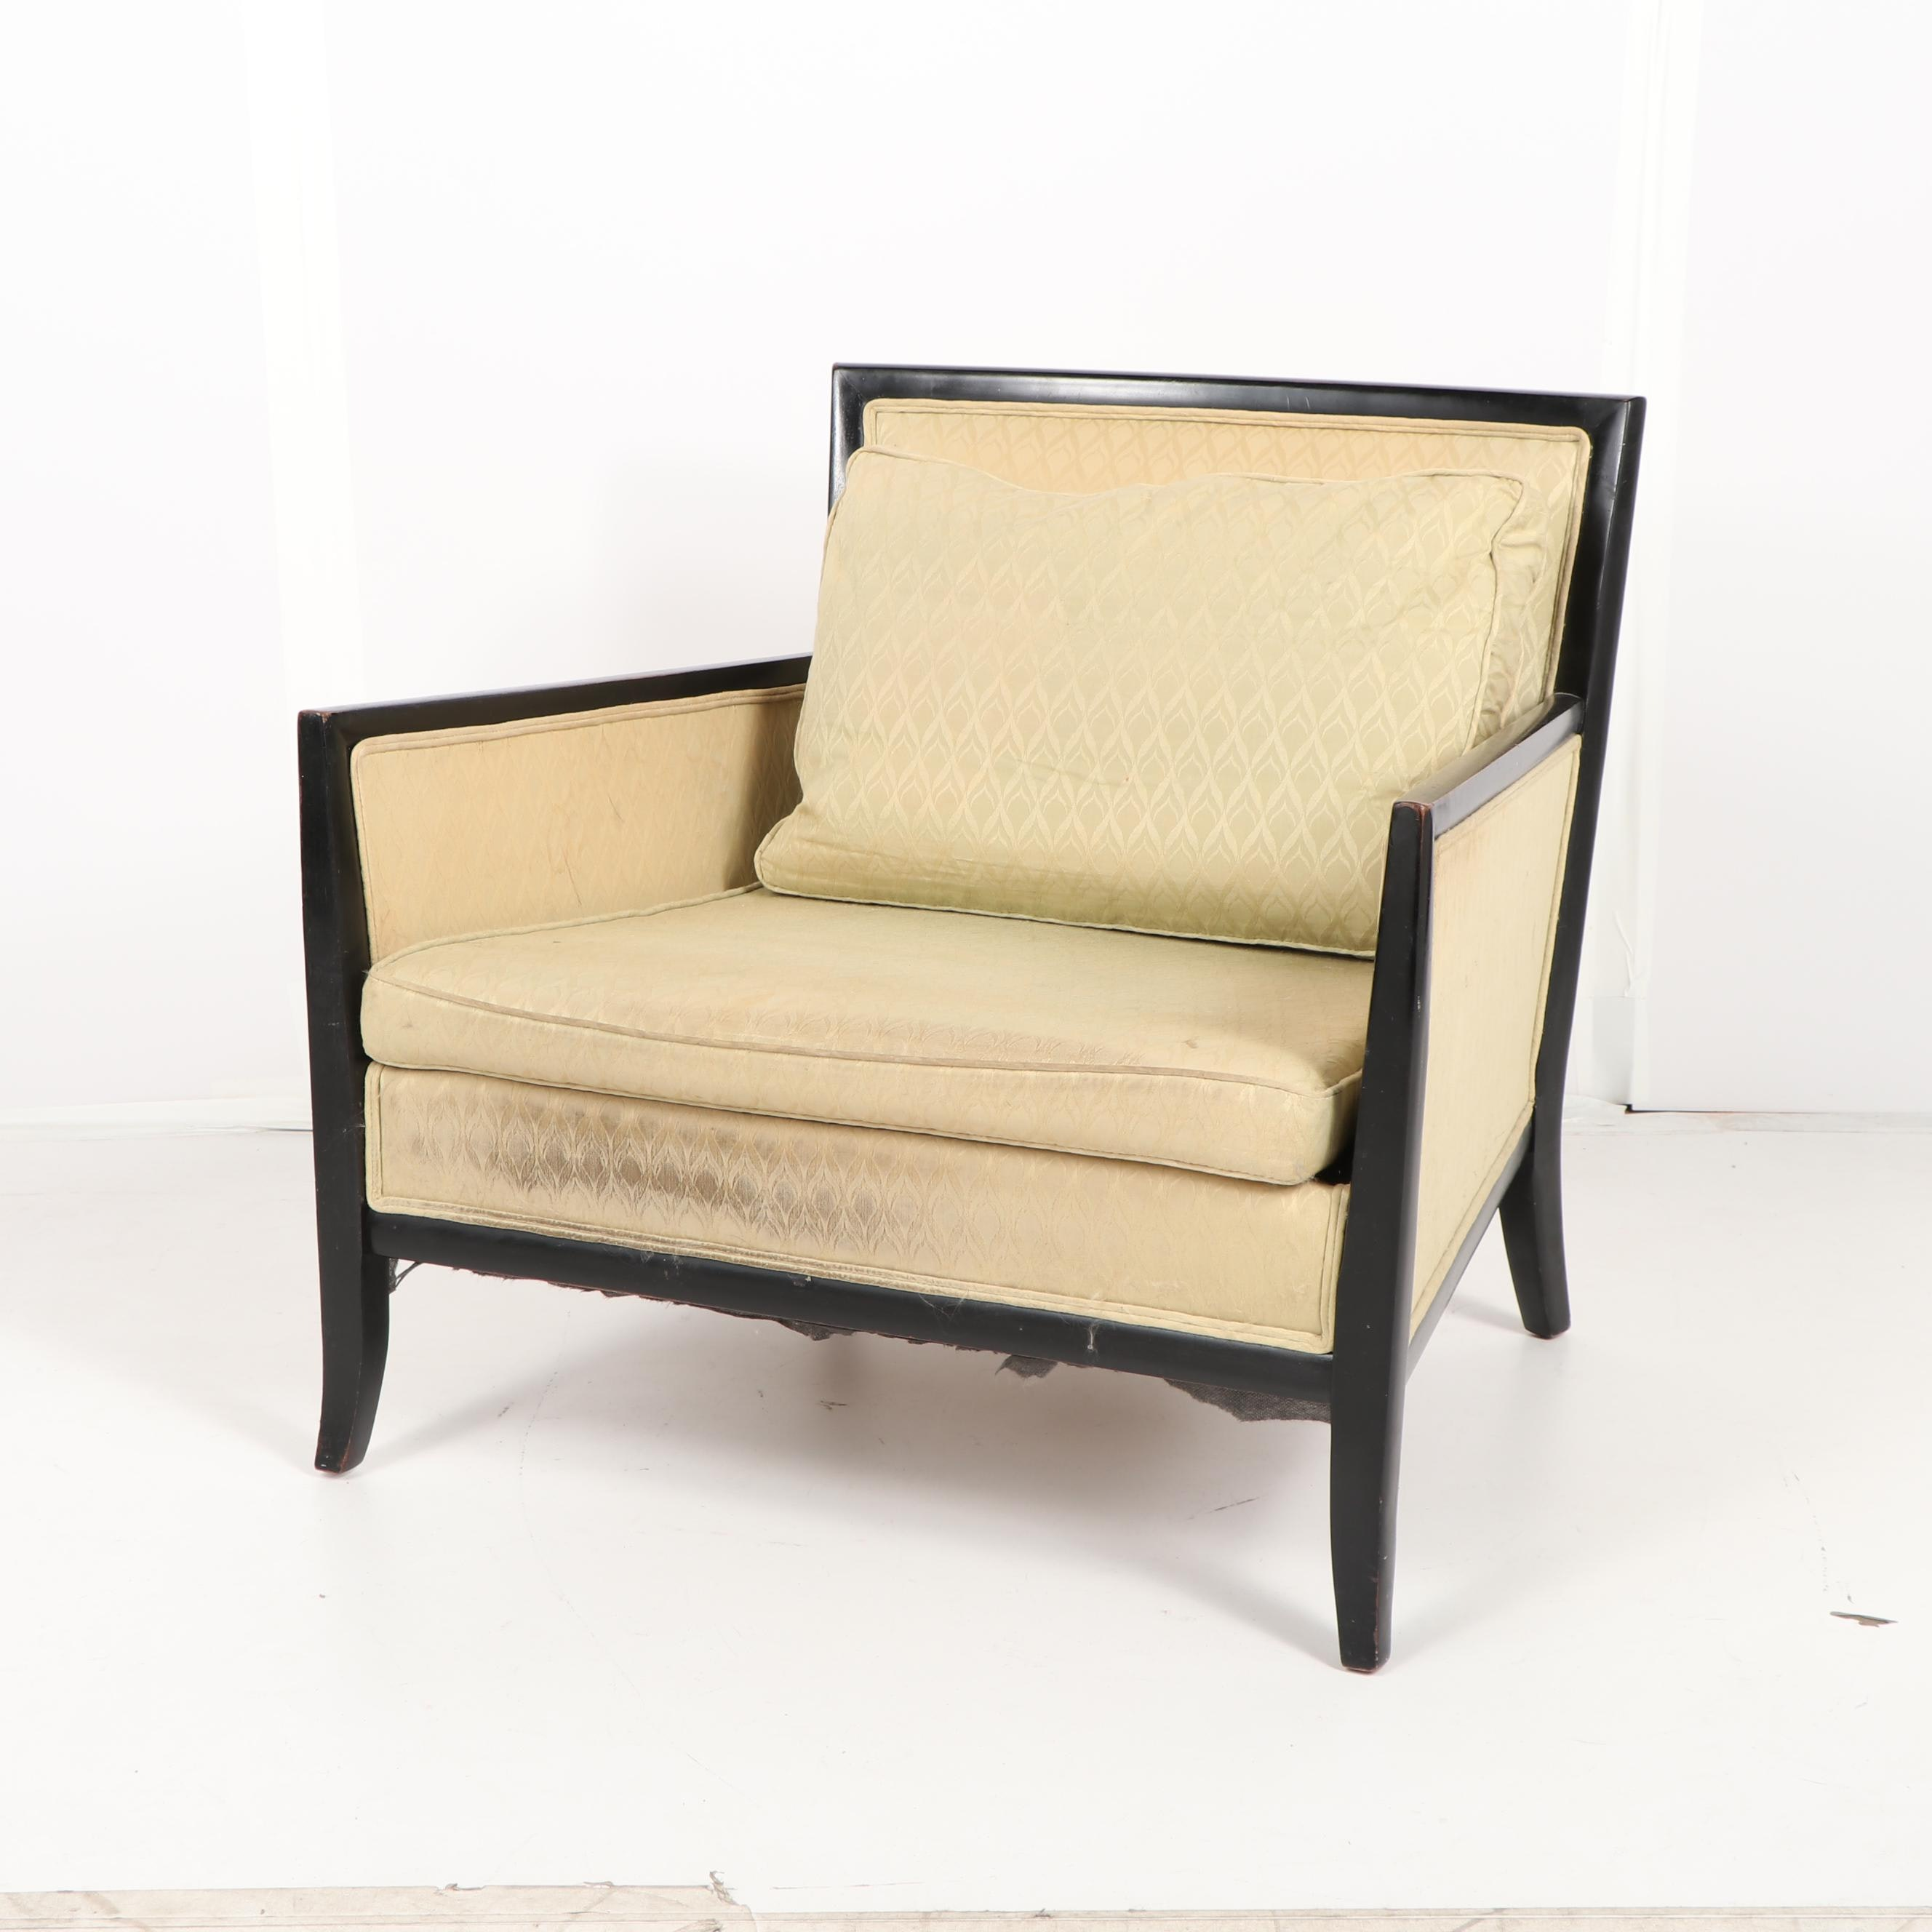 Painted Frame Upholstered Armchair, Late 20th Century